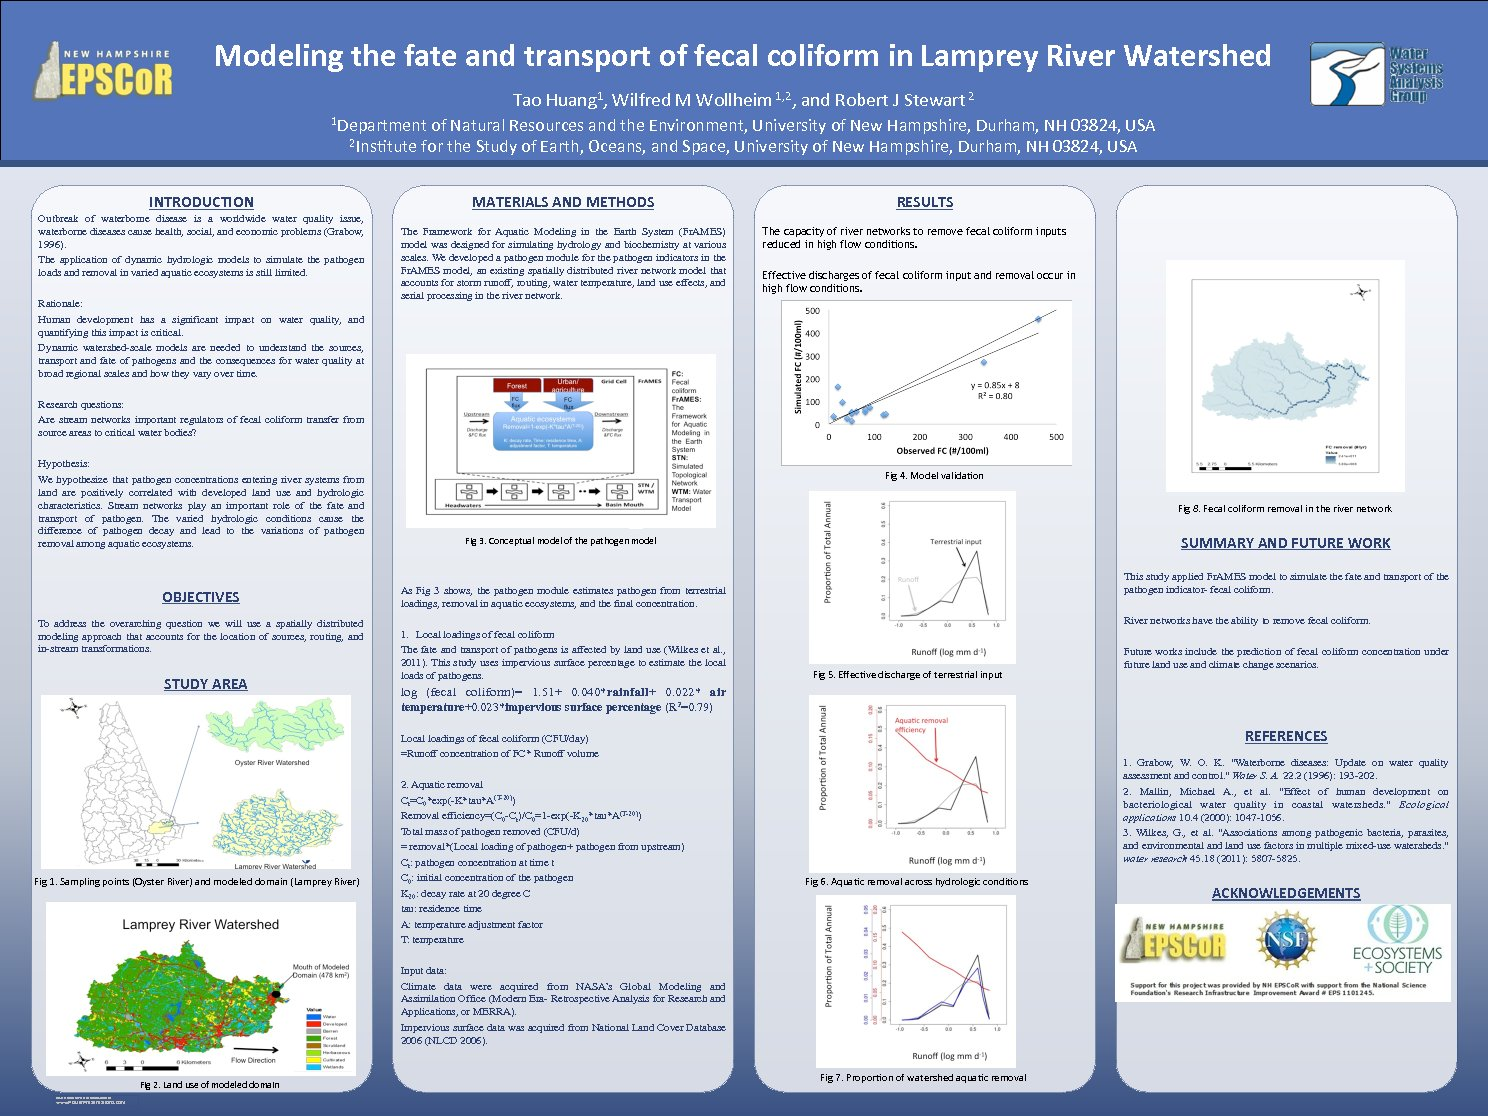 Modeling The Fate And Transport Of Fecal Coliform In Lamprey River Watershed by tao_1988